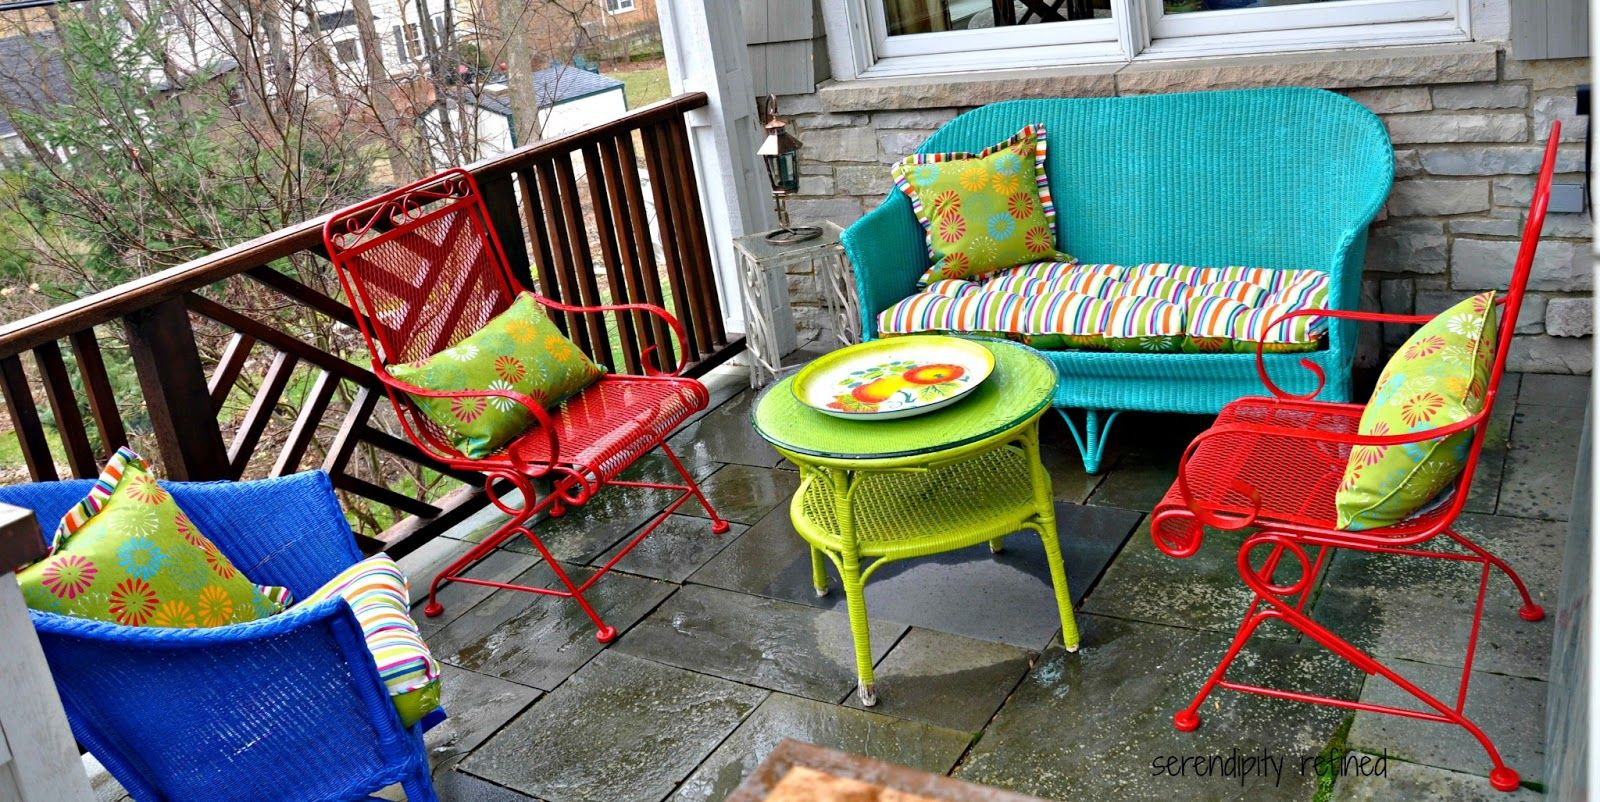 Pin By Serendipity On Urns By Serendipity Refined Colorful Patio